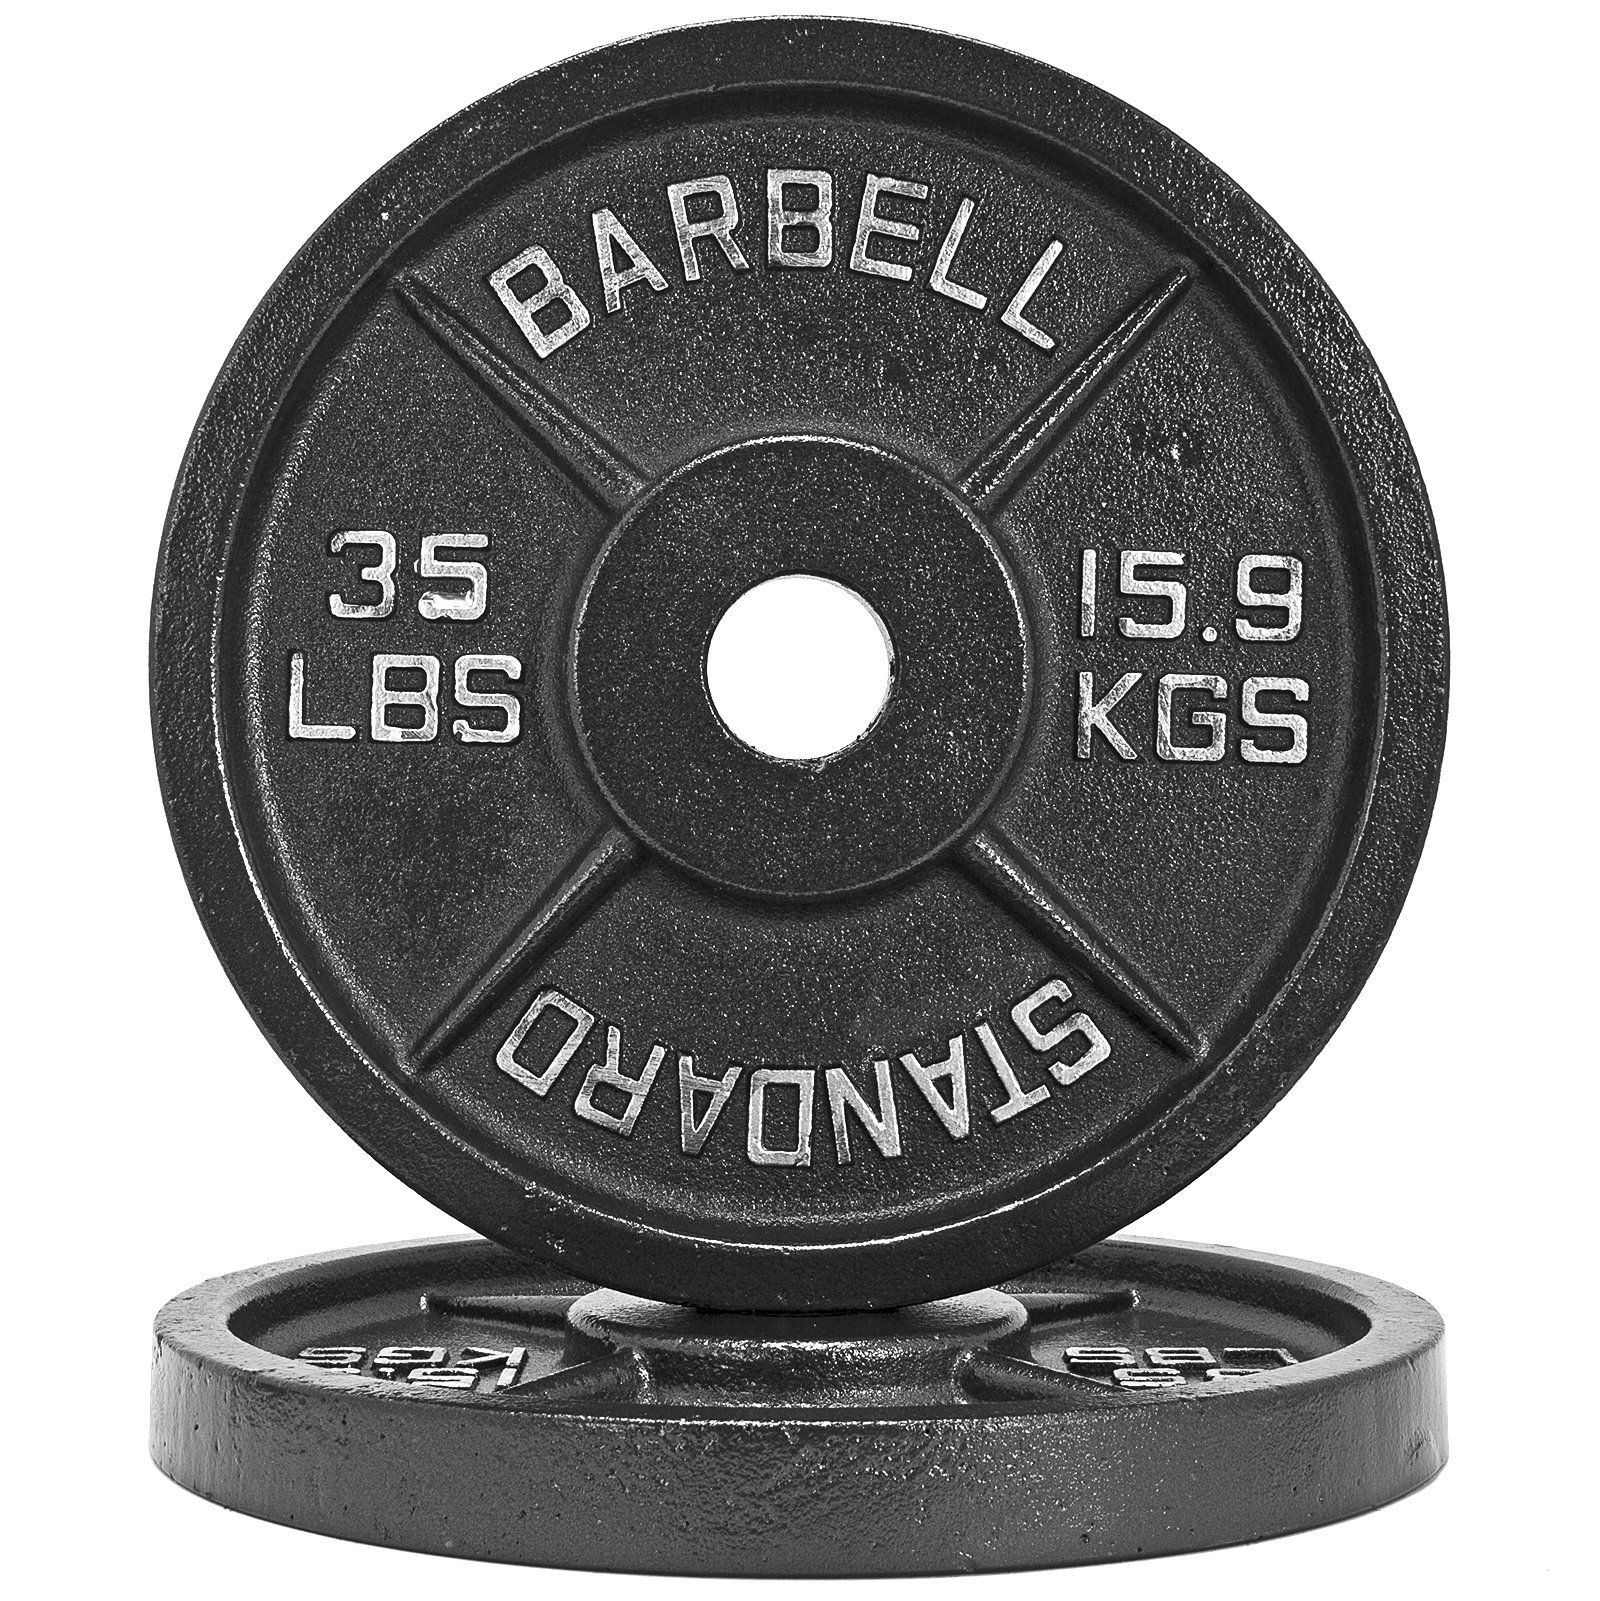 Fringe Sport 1.25lb - 45lb Iron Weight Plate Pairs/Weightlifting, Powerlifting, Other Strength Training Equipment (35)